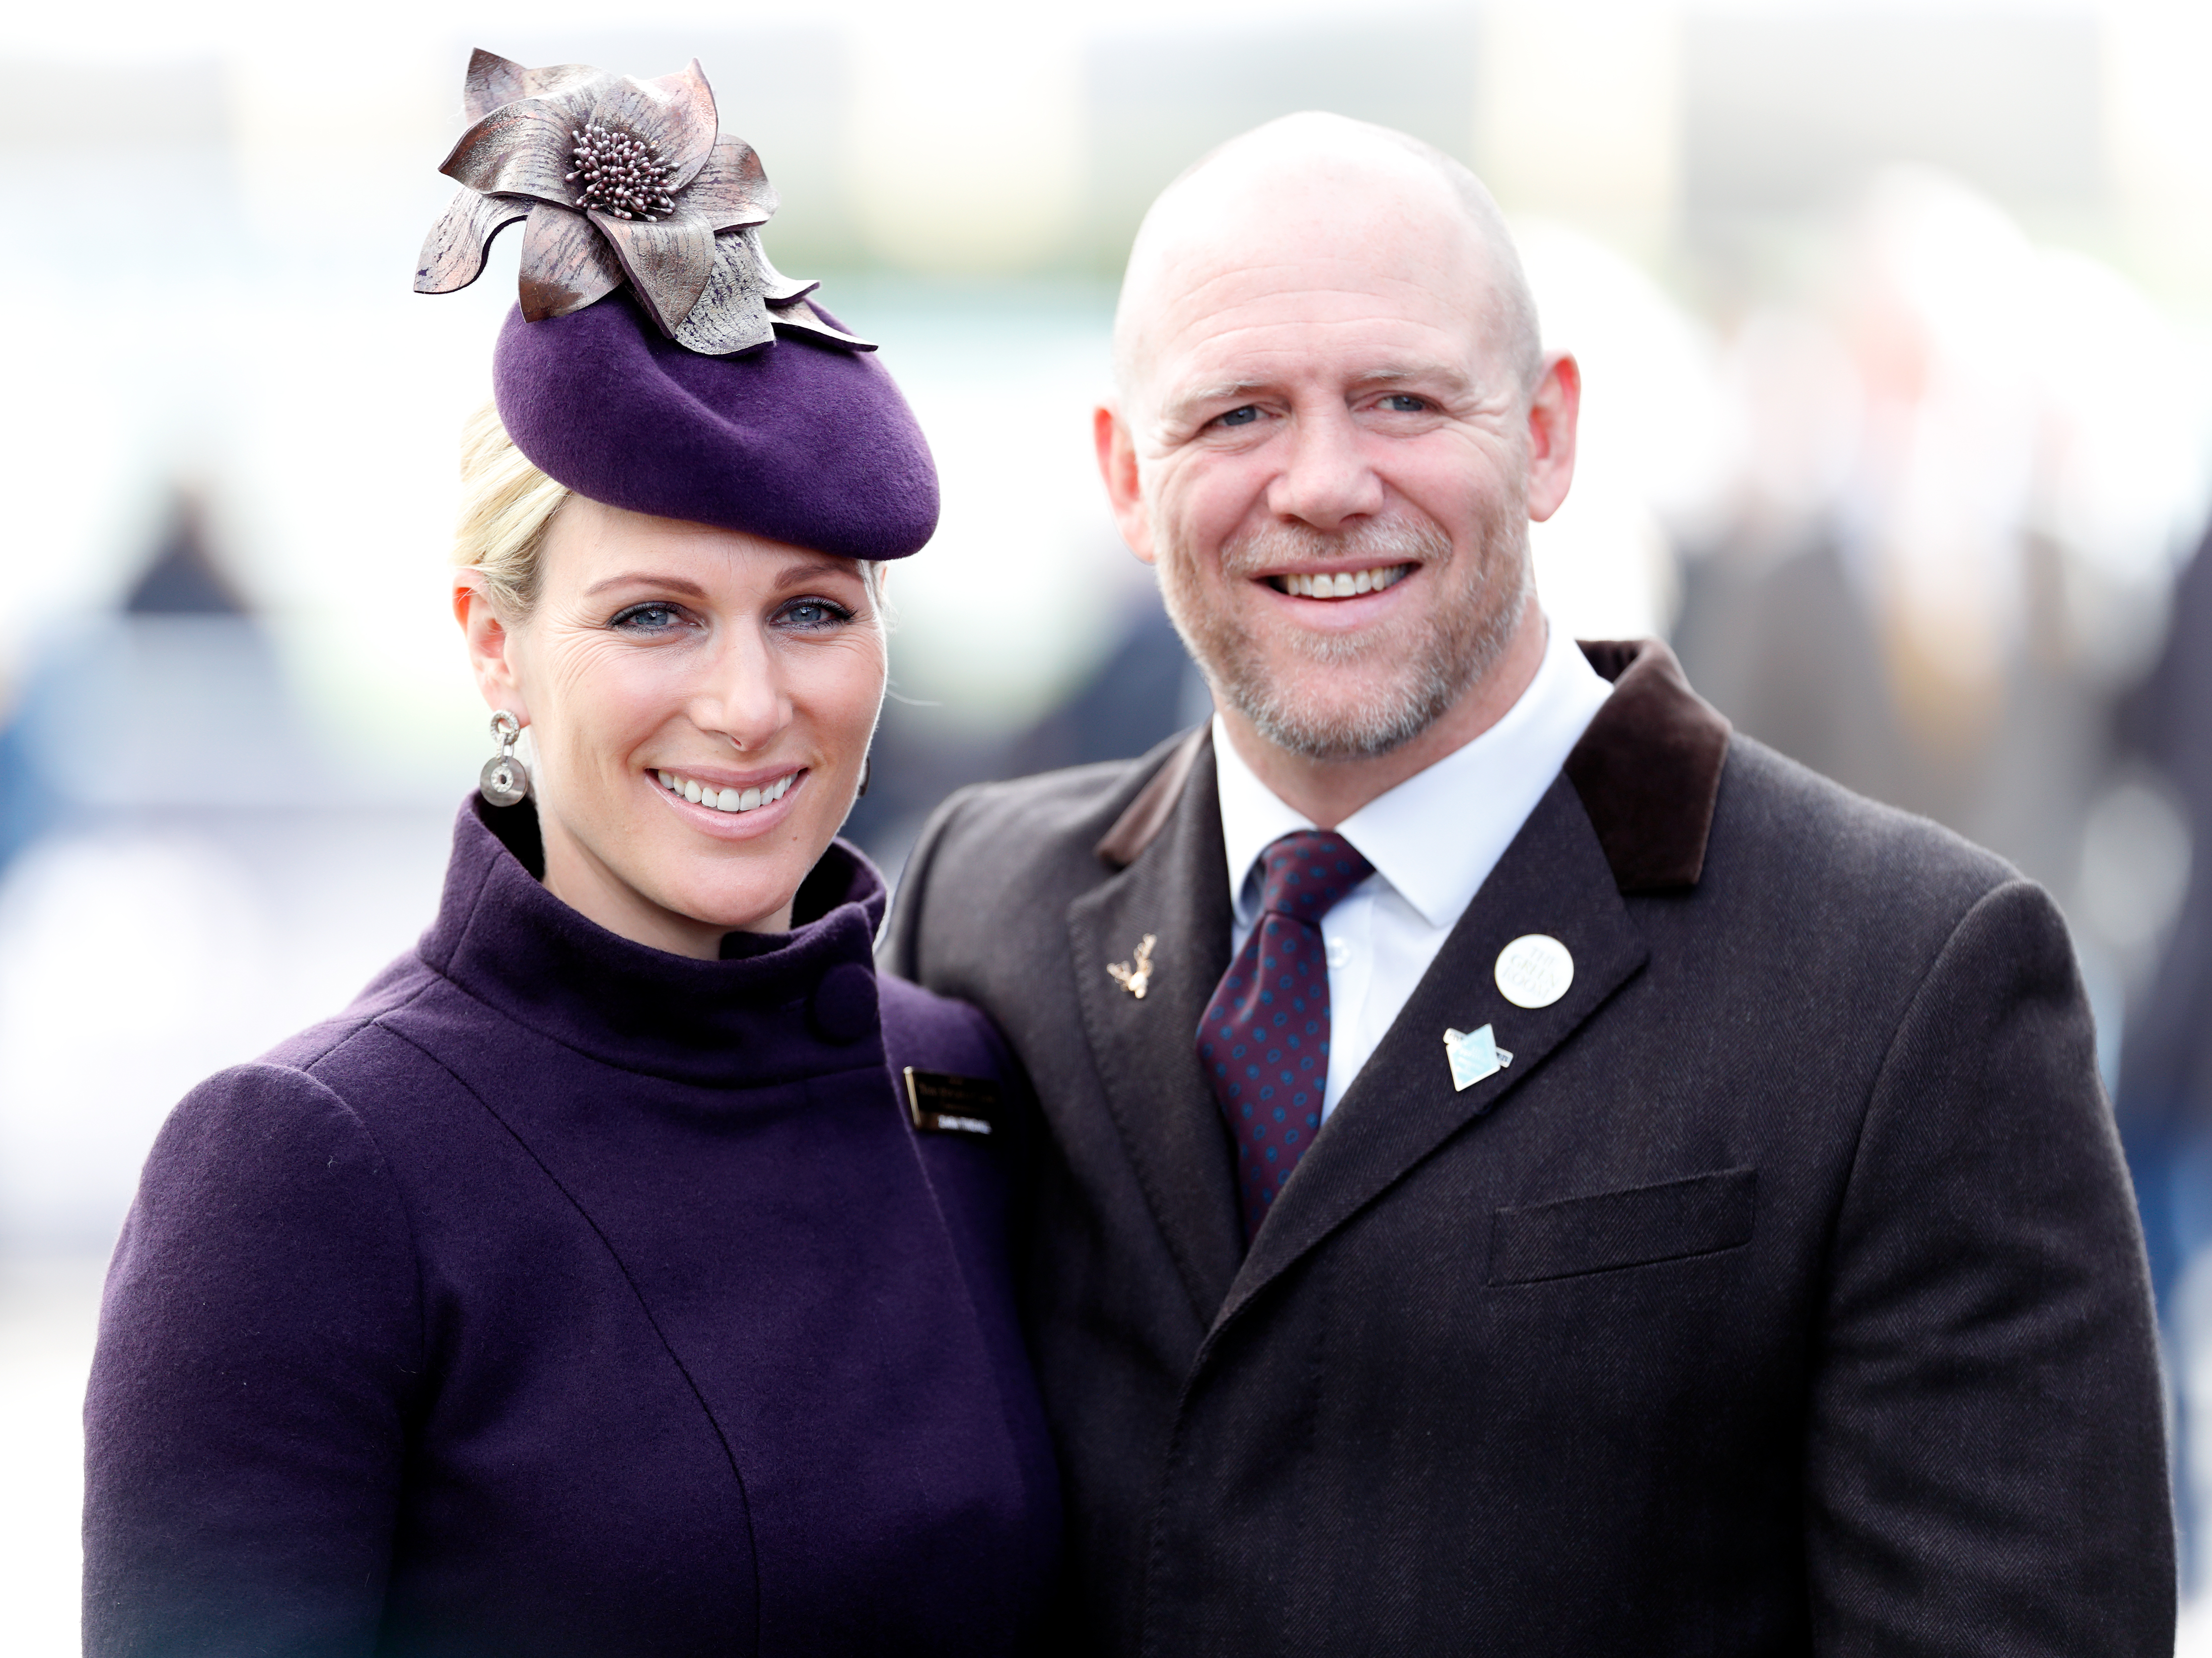 Zara Tindall and Mike Tindall attend day 4 'Gold Cup Day' of the Cheltenham Festival 2020 at Cheltenham Racecourse on March 13, 2020 in Cheltenham, England. (Photo by Max Mumby/Indigo/Getty Images)